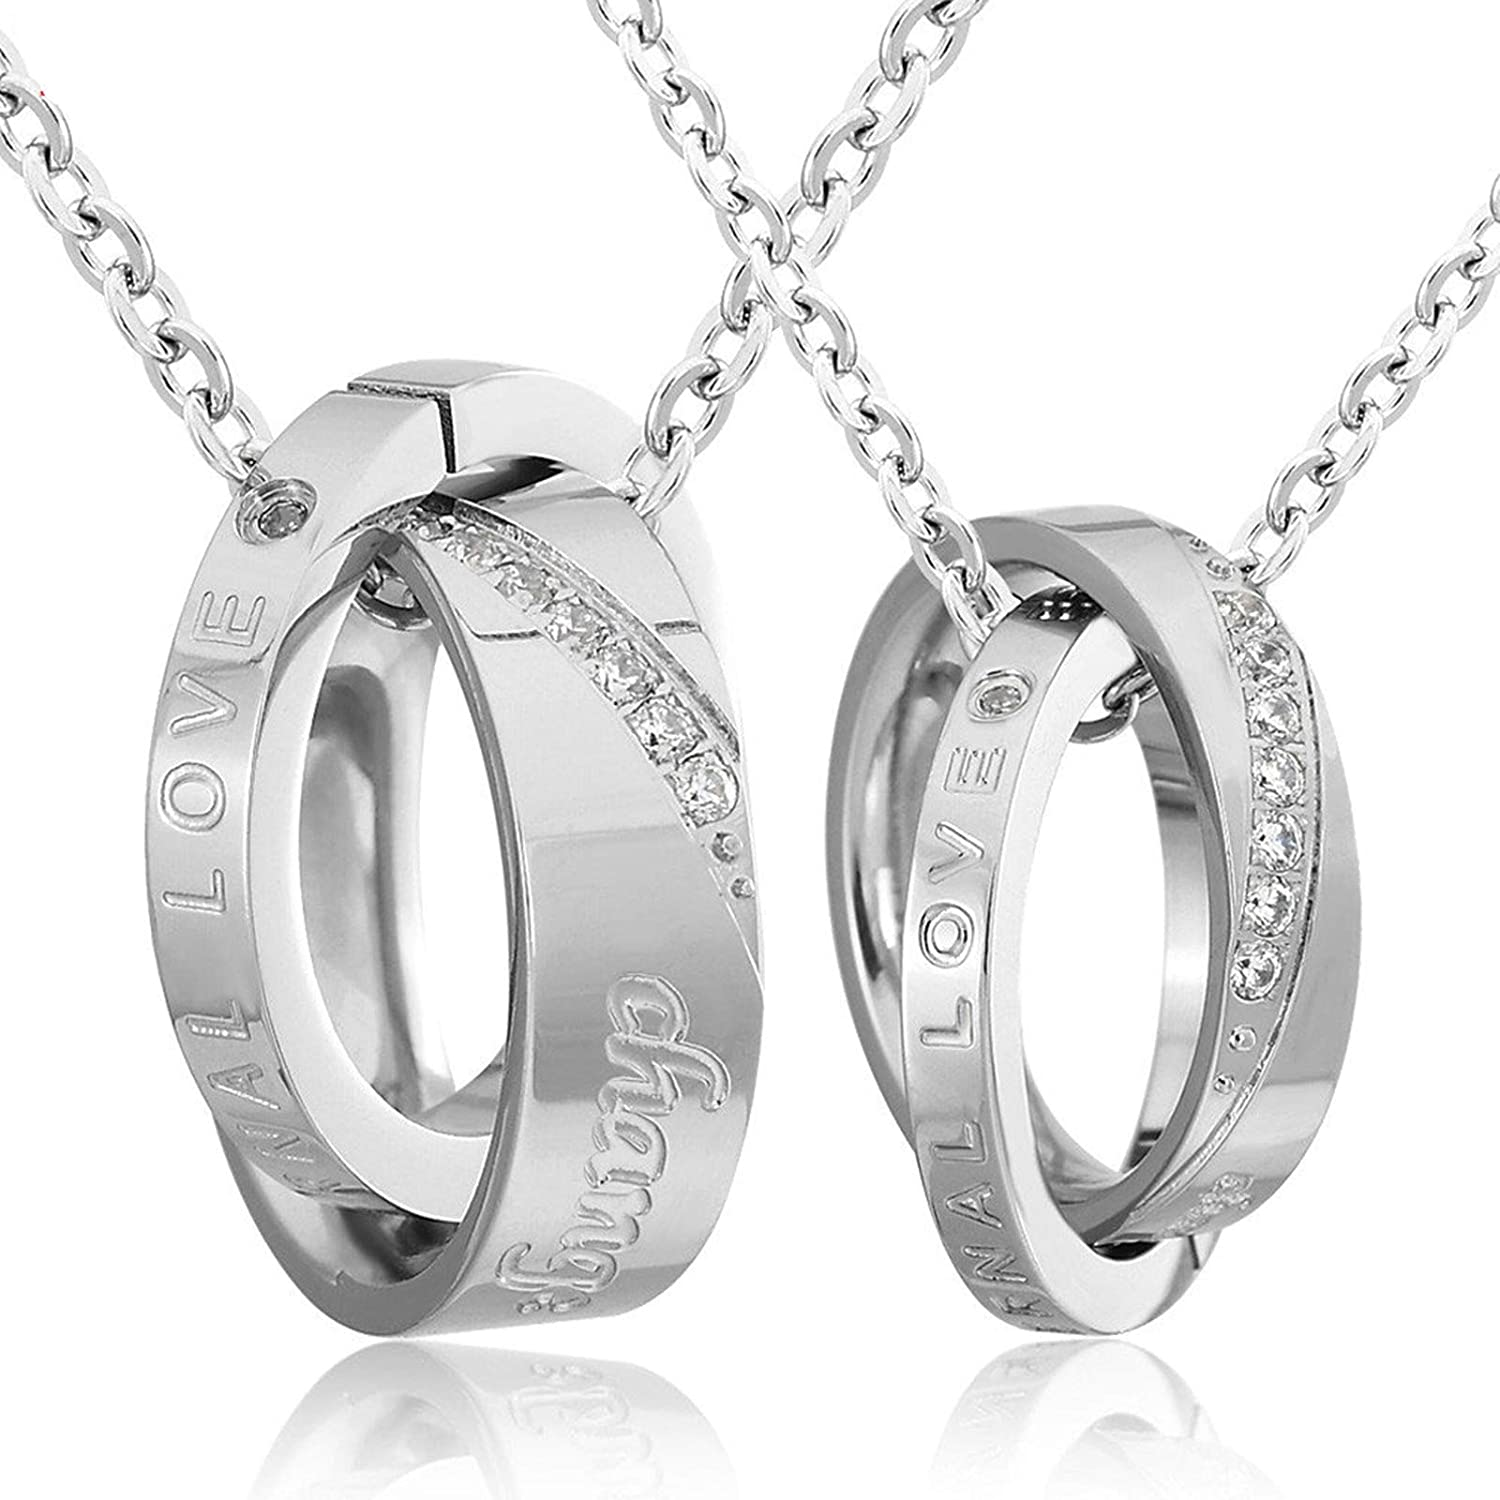 Gnzoe Jewelry Mens Stainless Steel Necklace Gothic Couple Silver Necklace Pendant